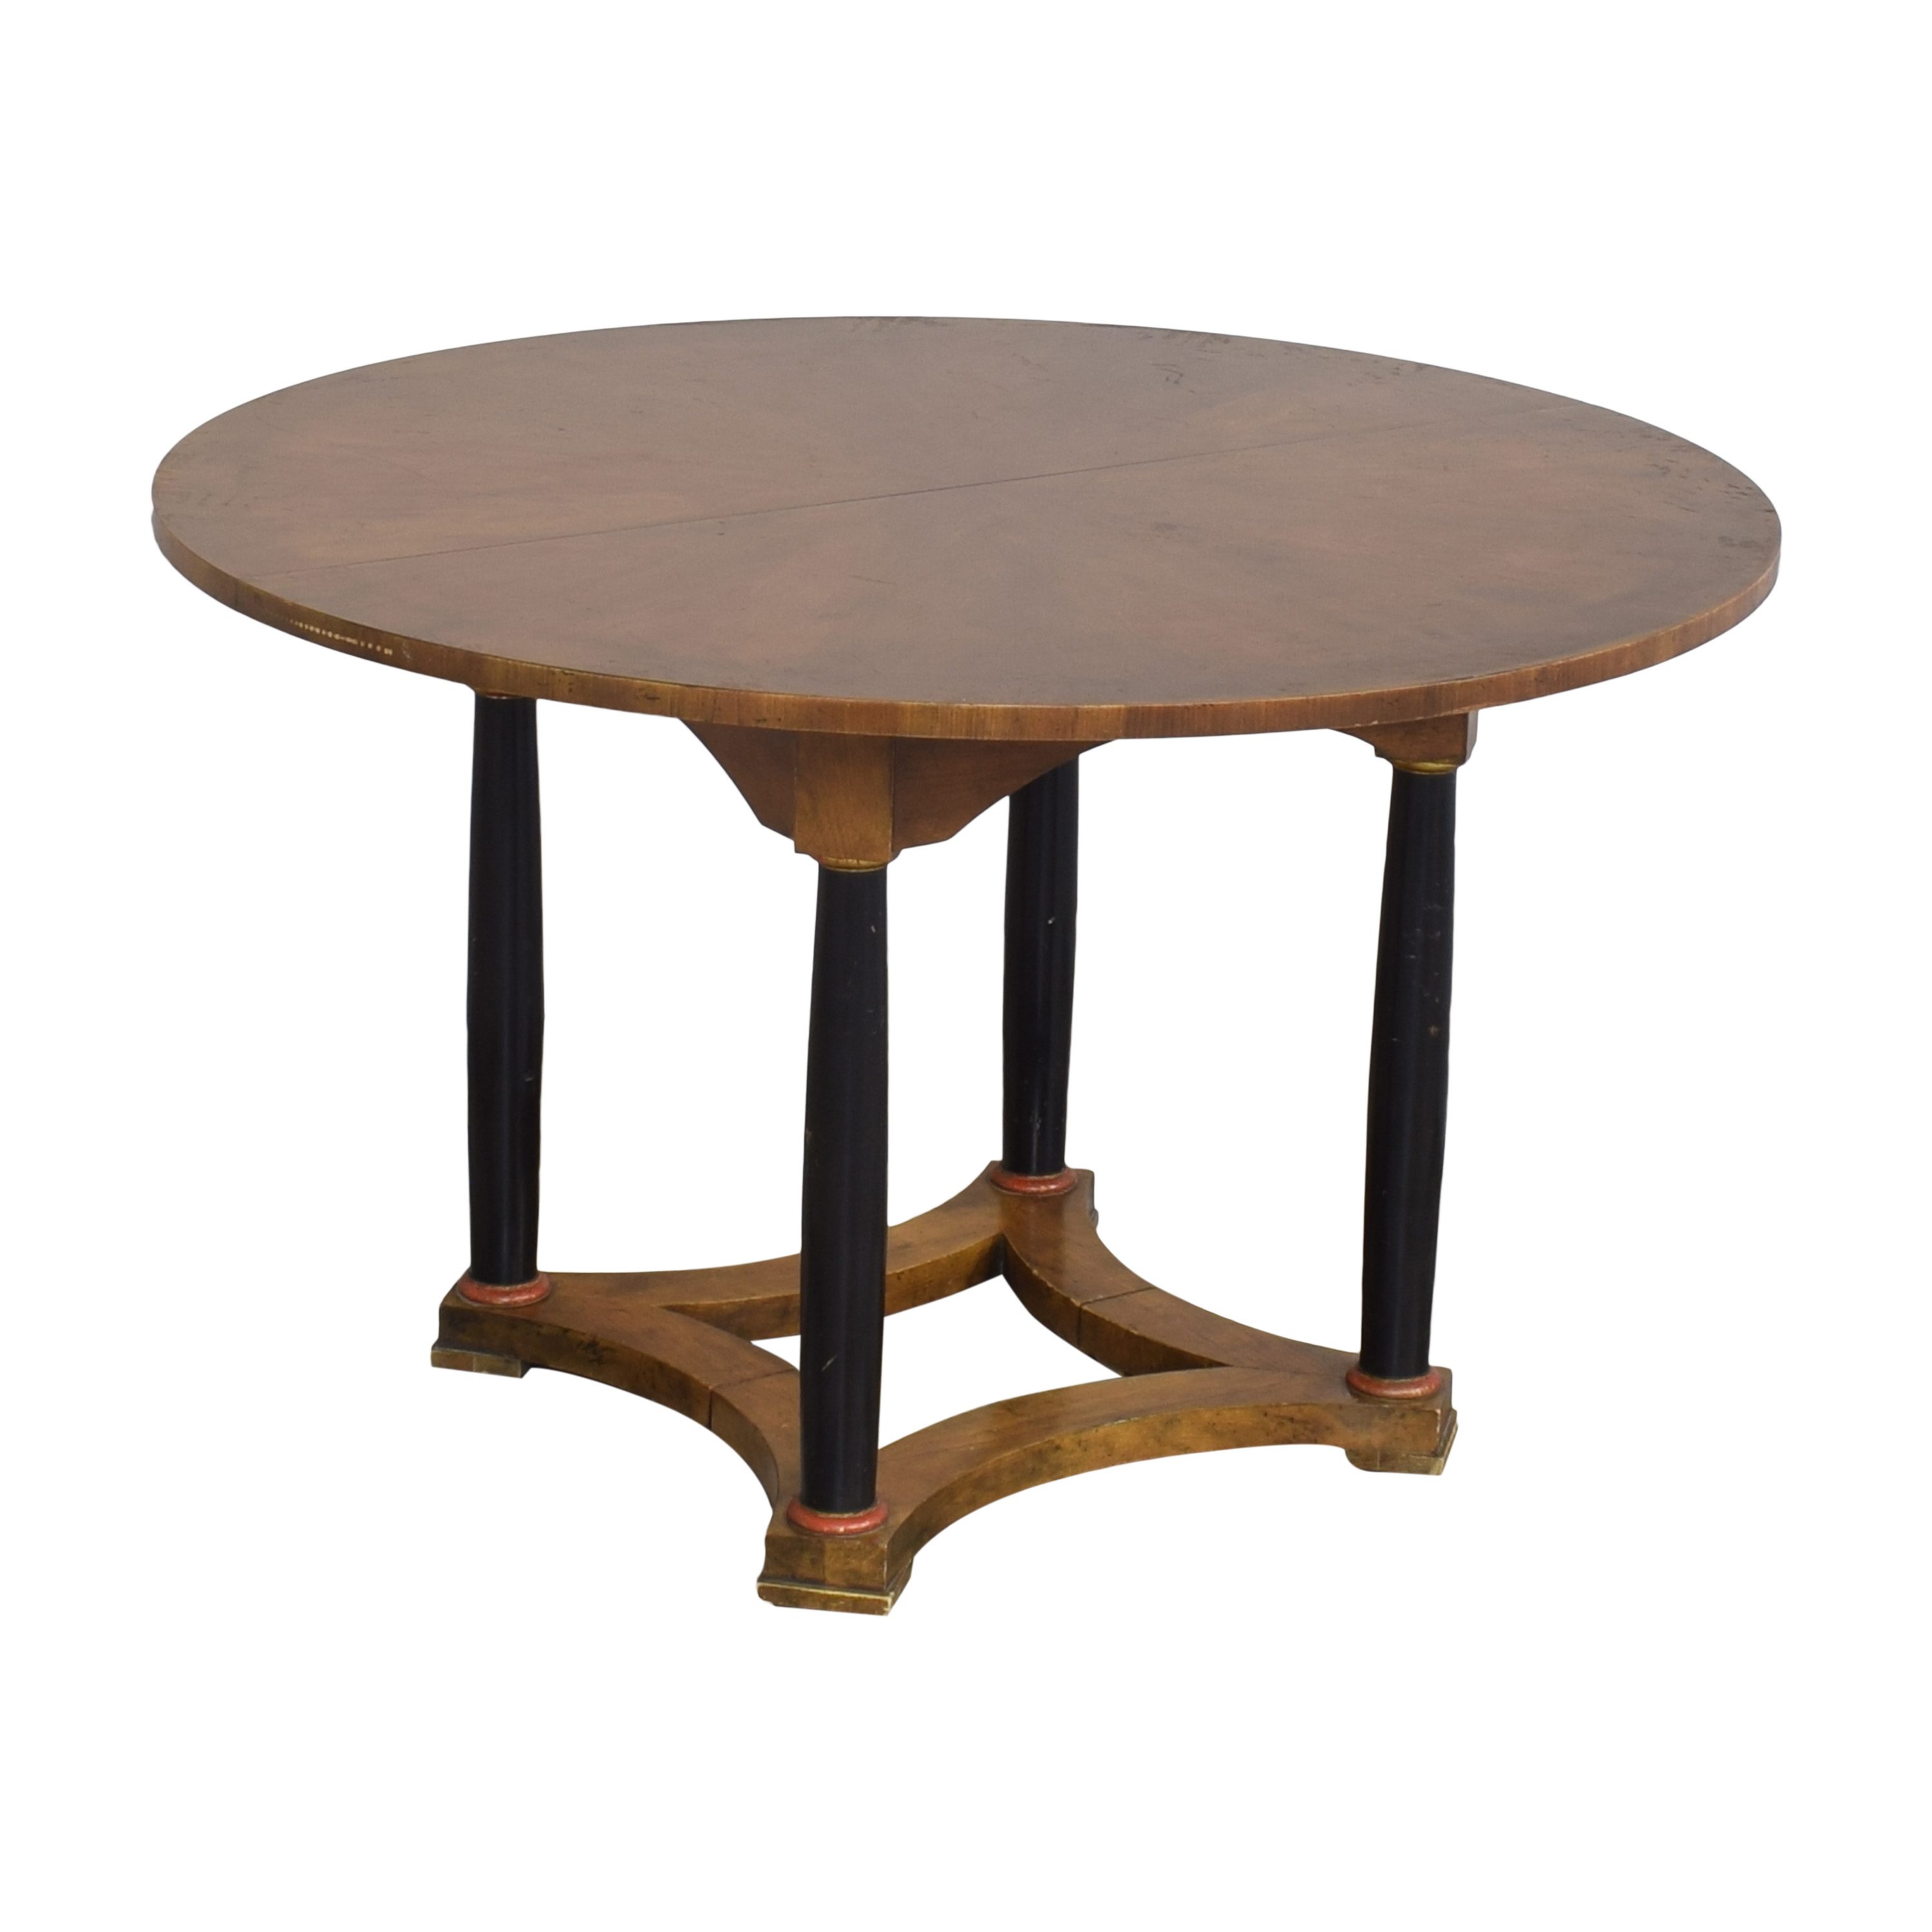 Baker Furniture Baker Furniture Round Dining Table second hand